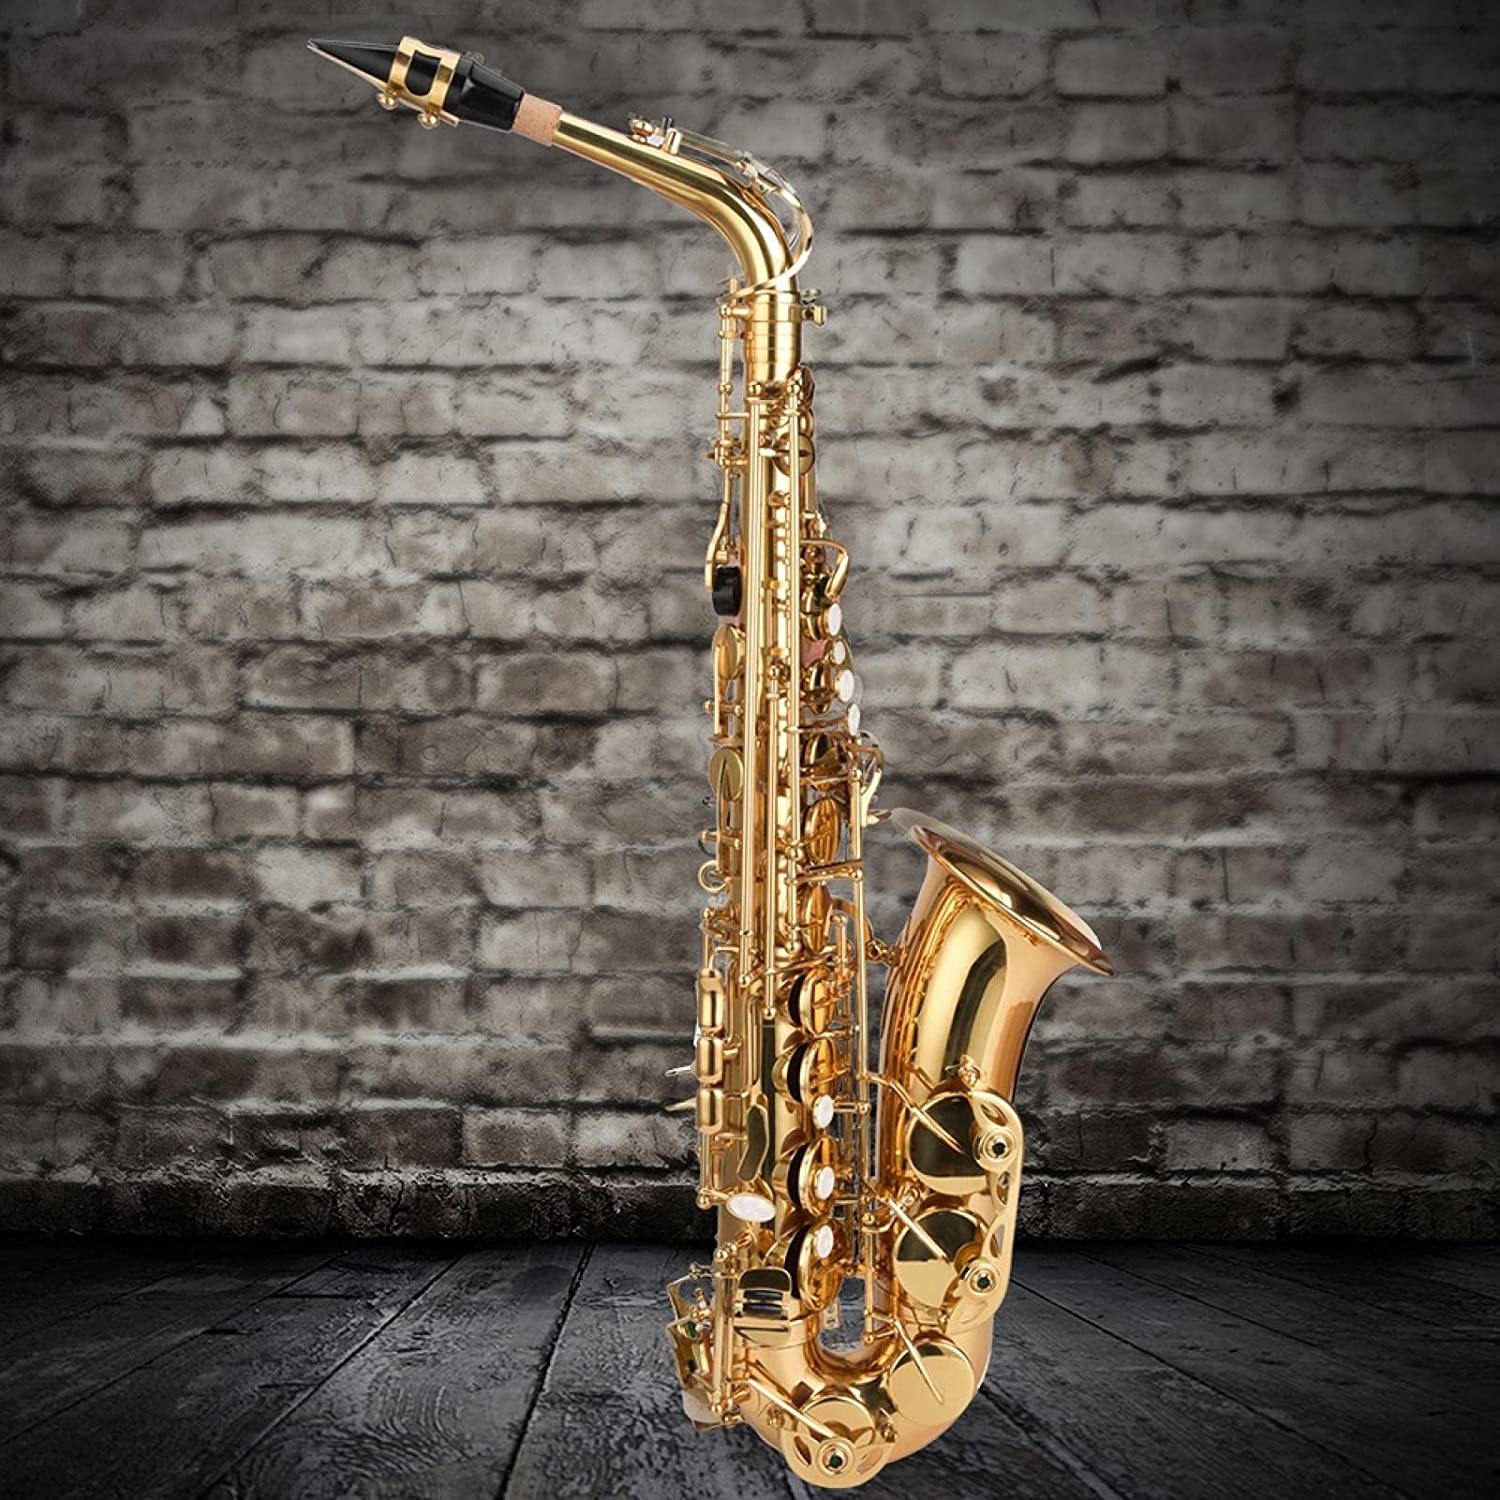 Tenor Sax With Saxophone Cleaning Accessories Clearance SALE Limited Popular standard time Training For Care